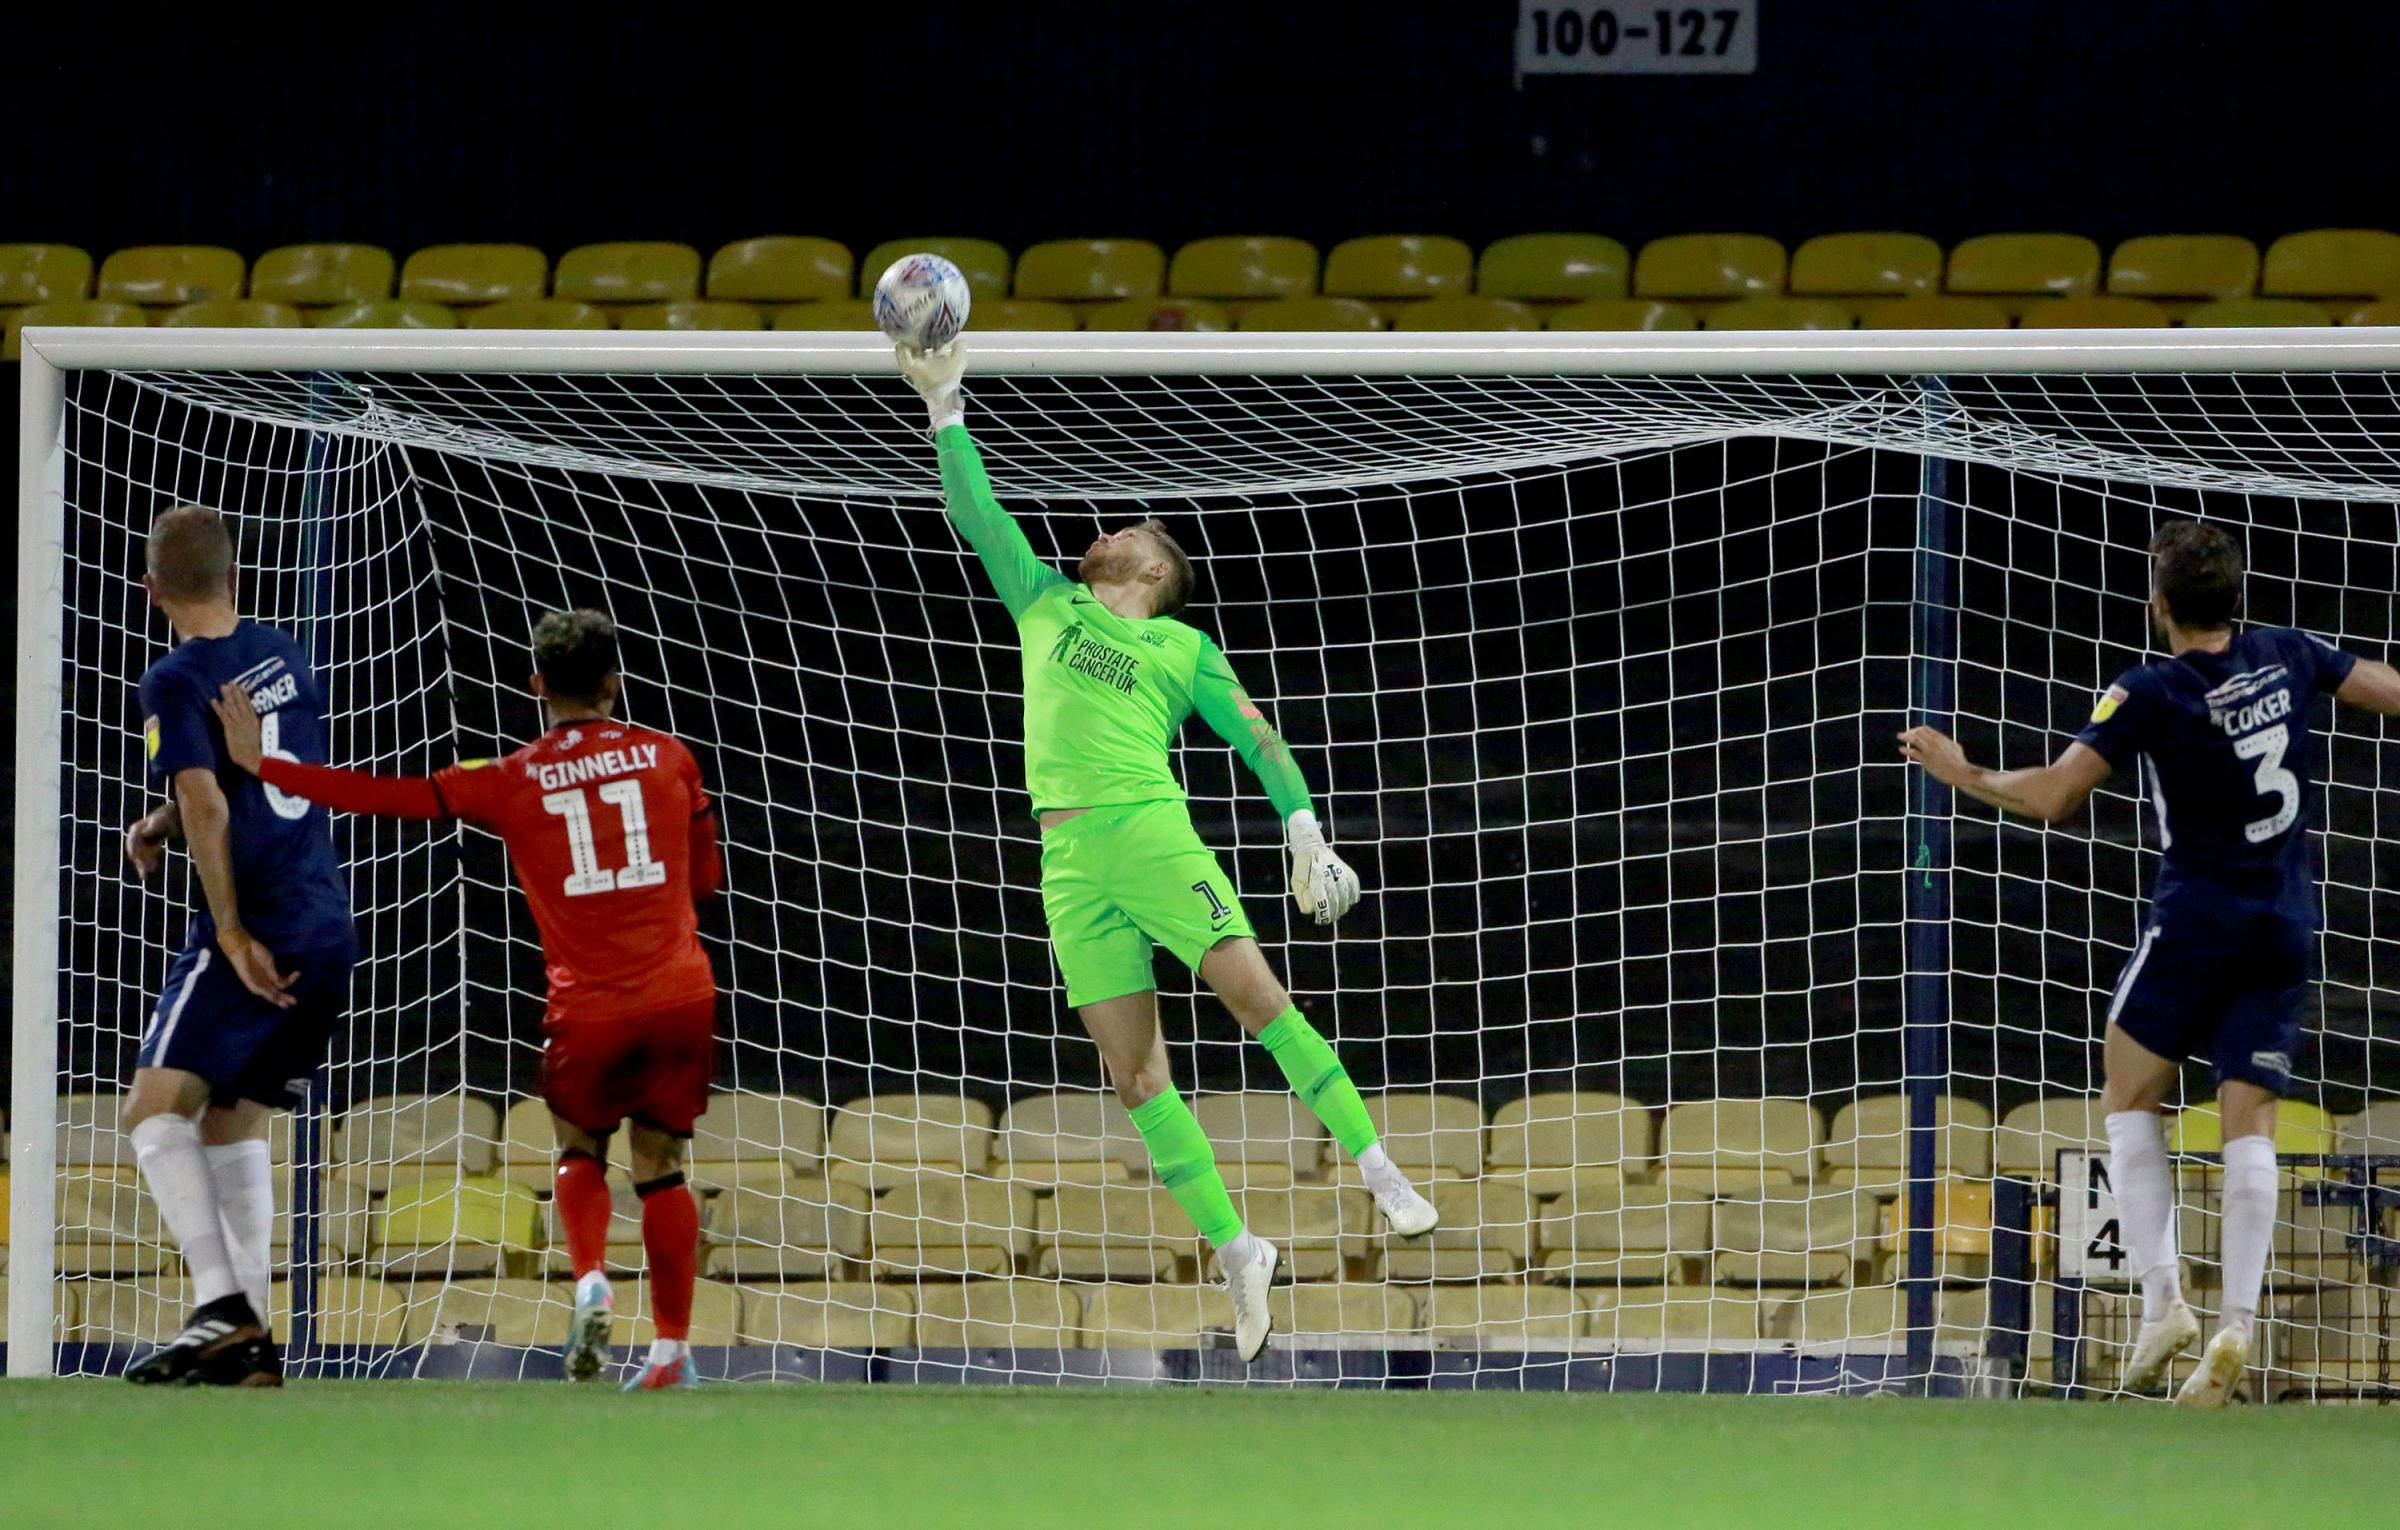 Back in contention - Southend United goalkeeper Mark Oxley